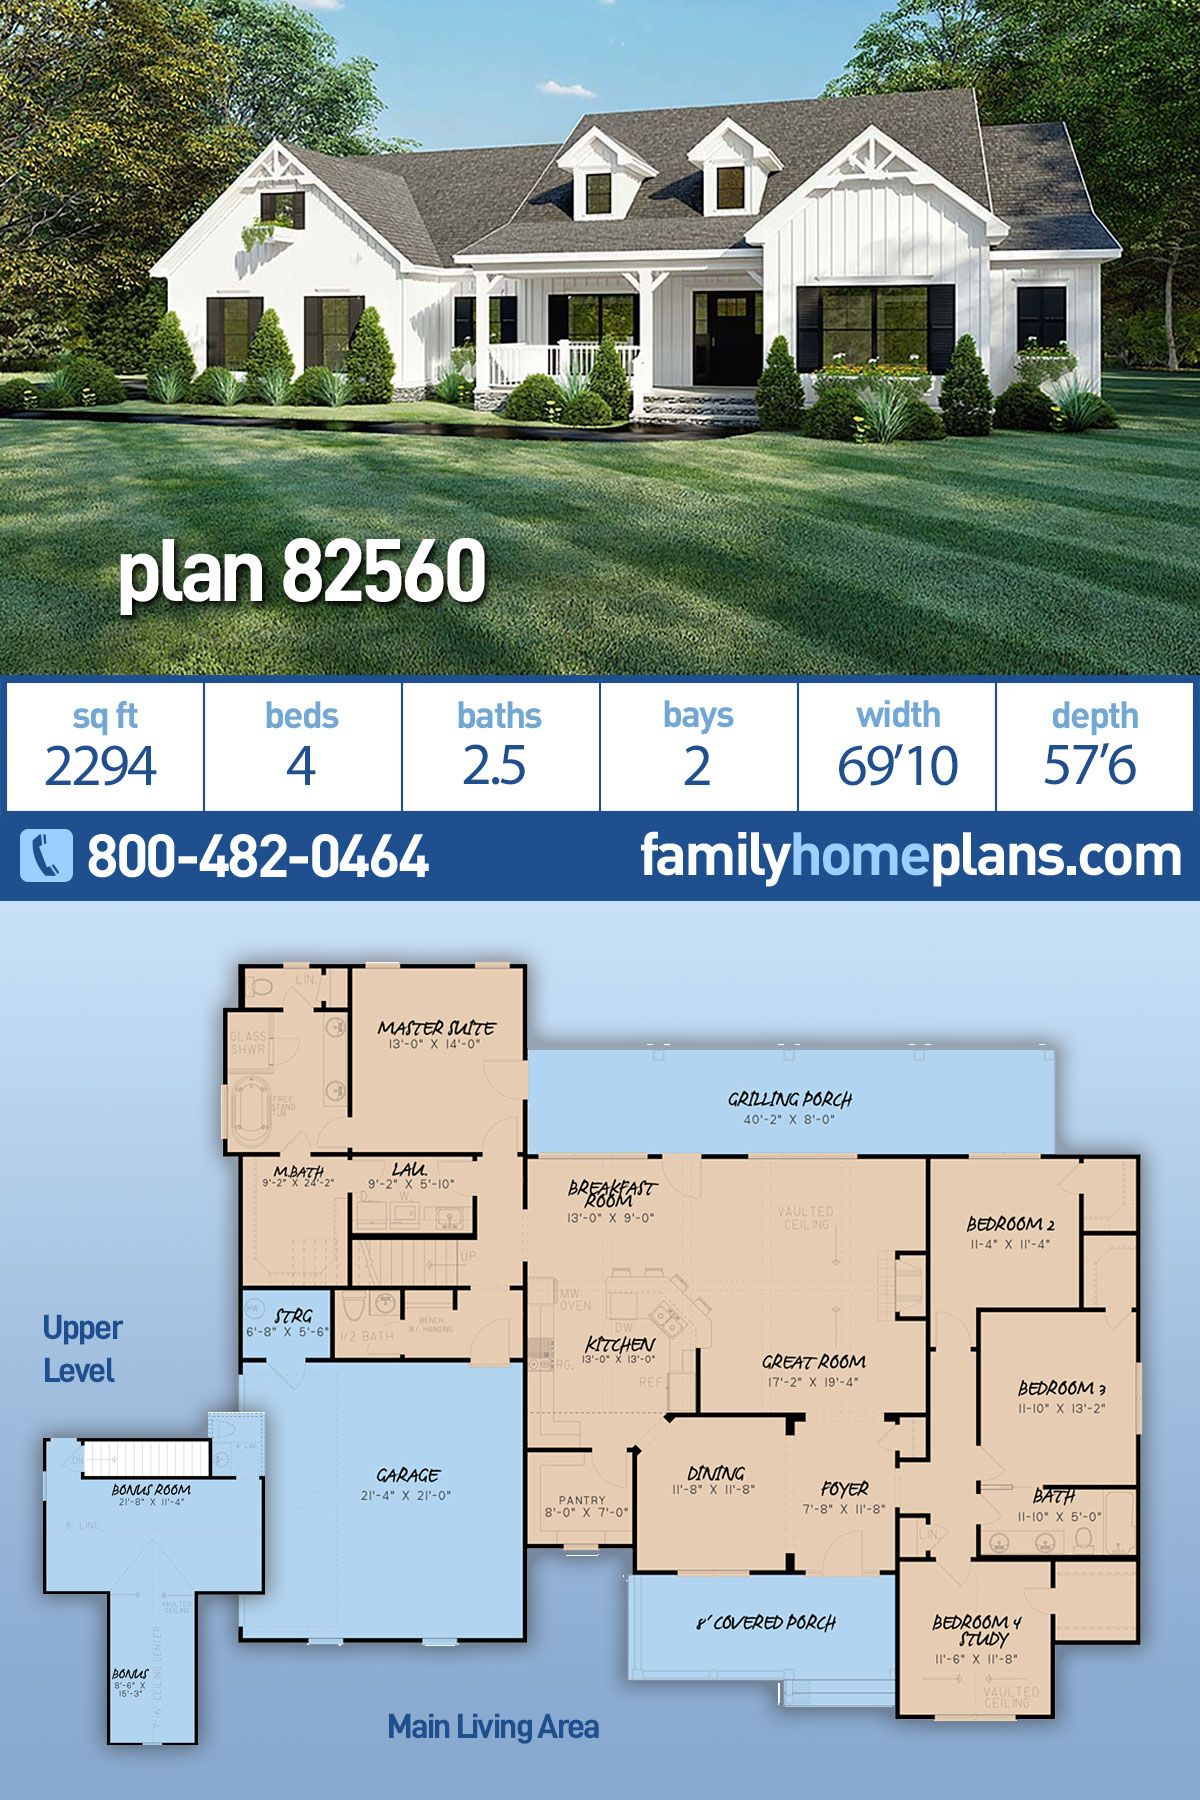 One Story Style House Plan 82560 With 4 Bed 4 Bath 2 Car Garage Family House Plans Ranch House Plan Farmhouse Style House Plans